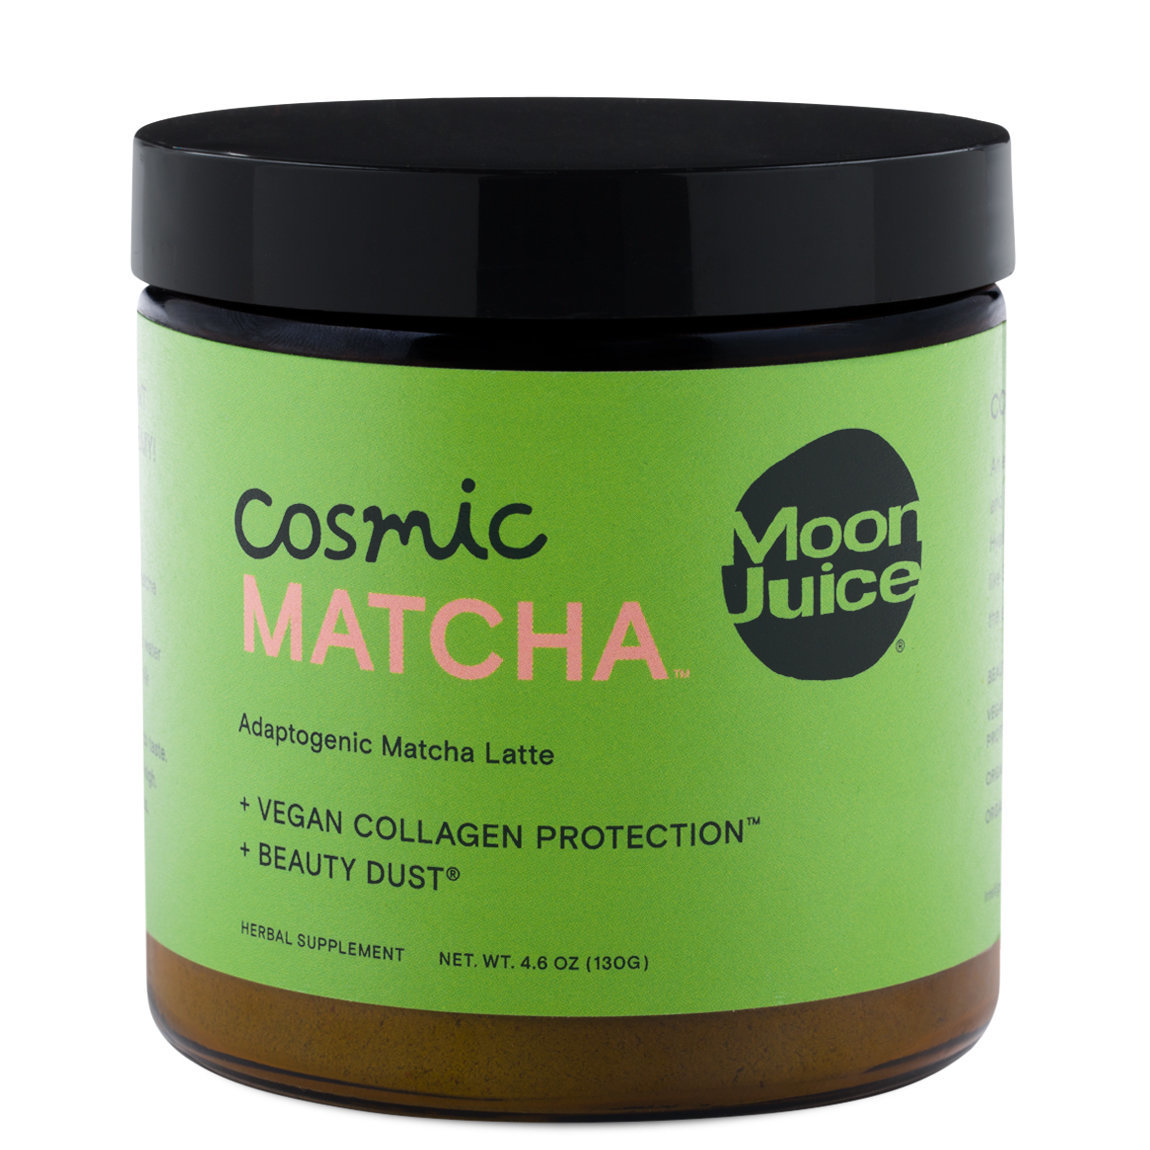 Moon Juice Cosmic Matcha product smear.